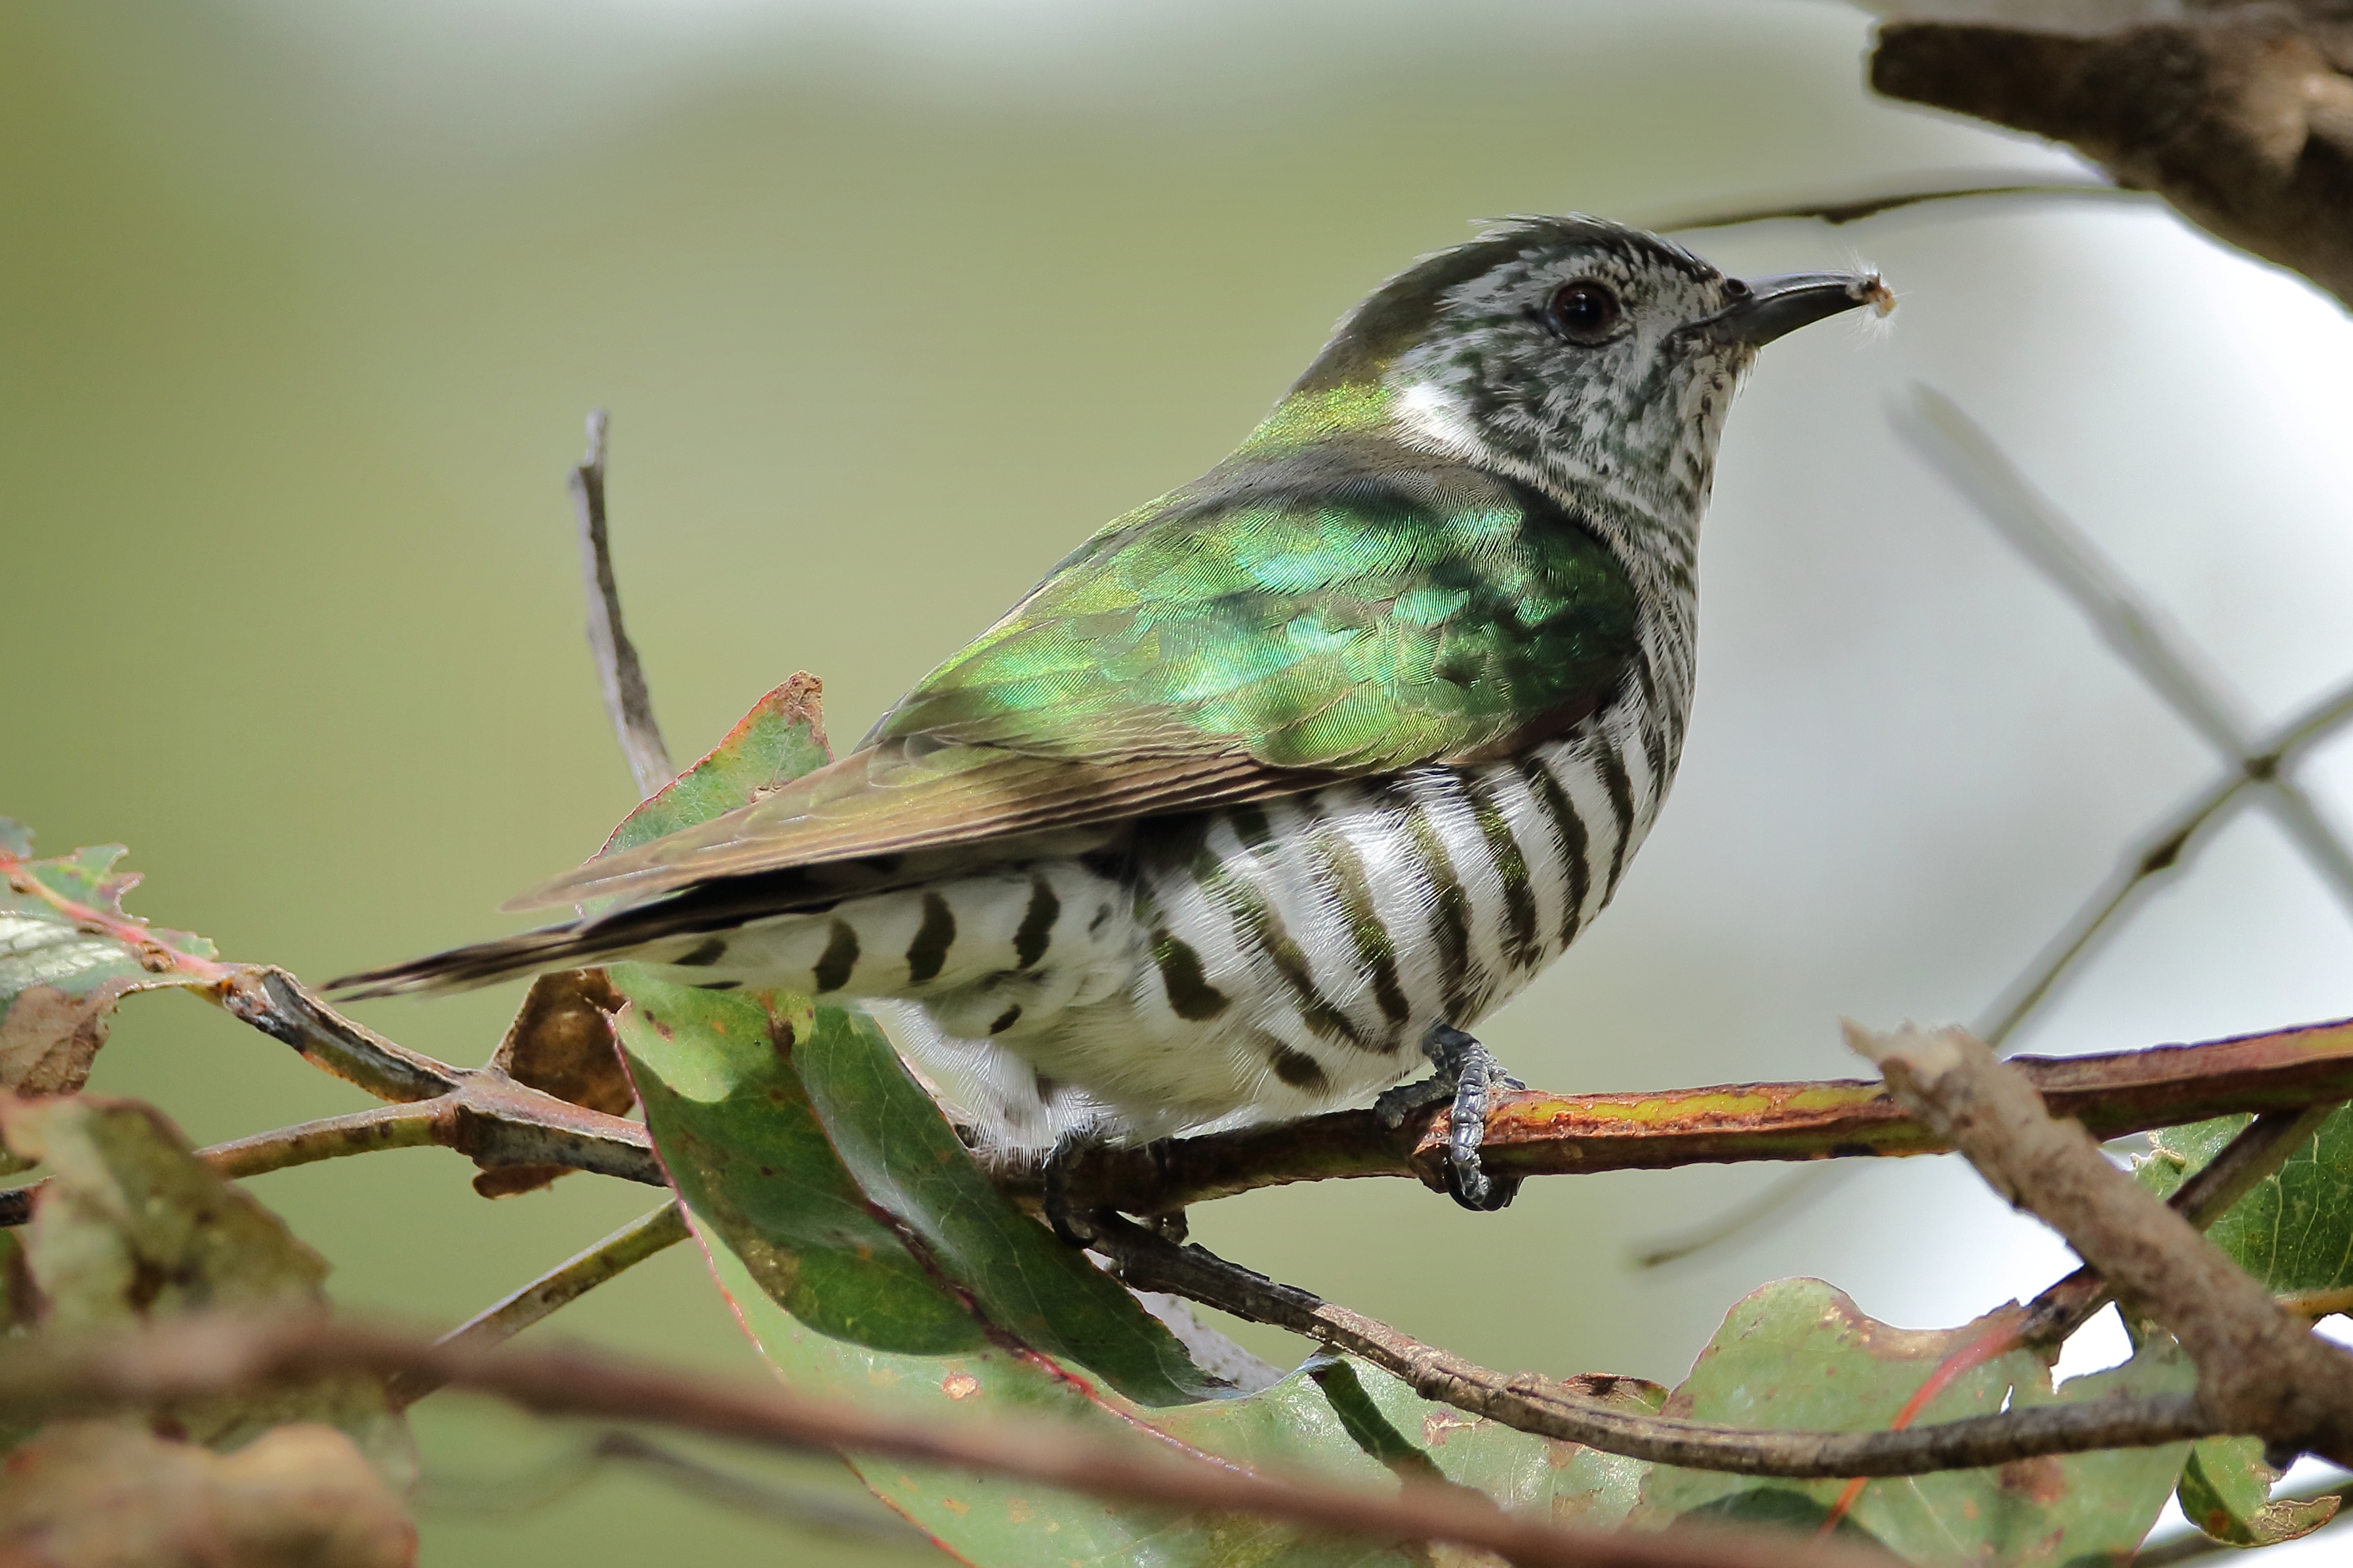 Shining Cuckoo Adult Feeding On Gum Leaf Skeletoniser Uraba Lugens Caterpillar From